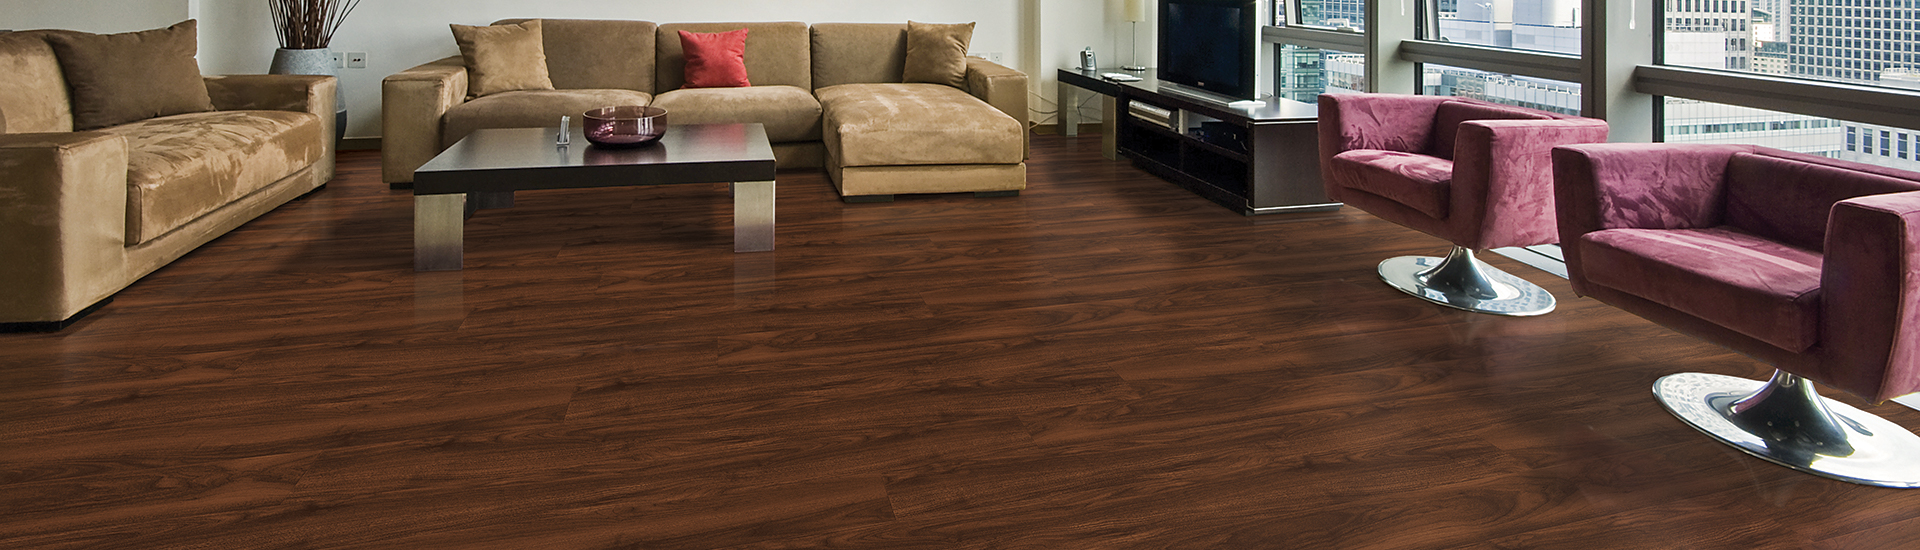 Laminate floor pictures extravagant home design for Crystal springs hickory laminate